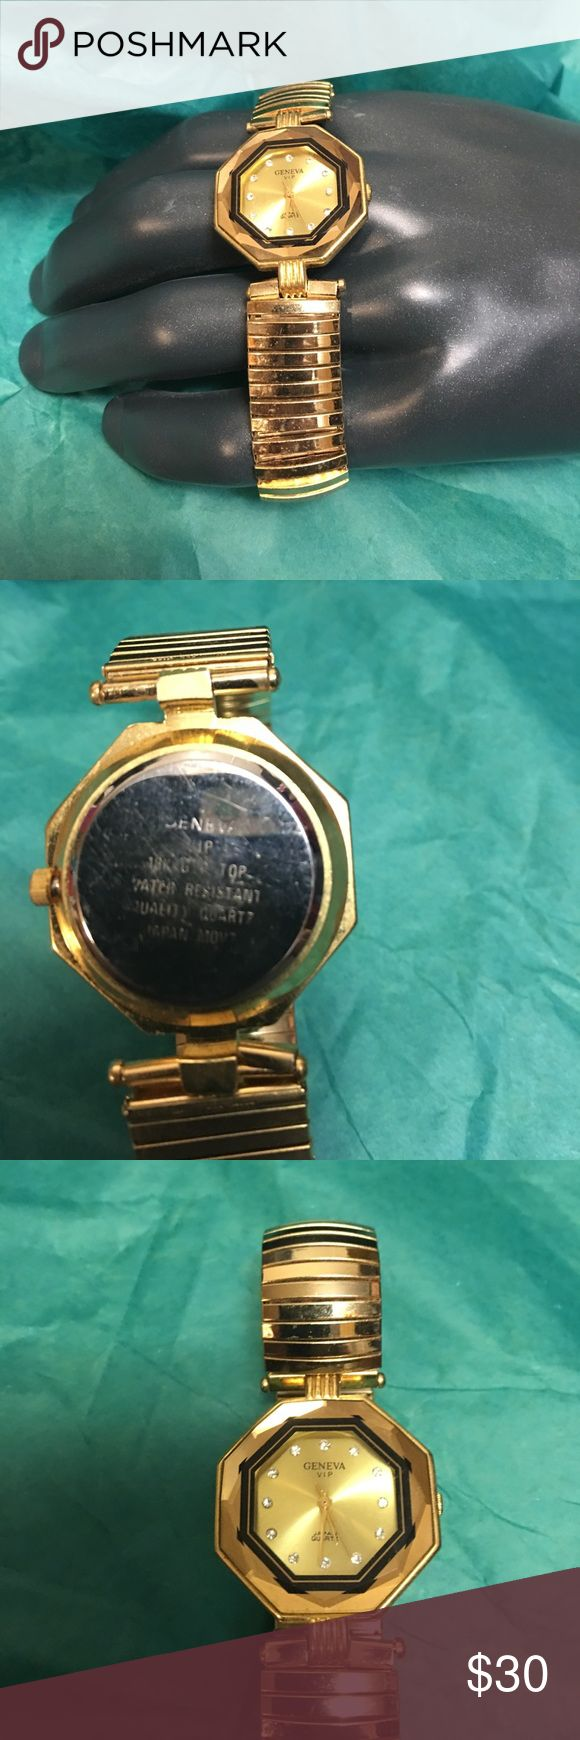 Geneva Vip Watch 18 K Quartz Geneva Vip Watch 18 K Quartz Water Resistant Vintage Japan Gold plated  needs new battery if you want battery in that is extra Geneva Platinum Accessories Watches